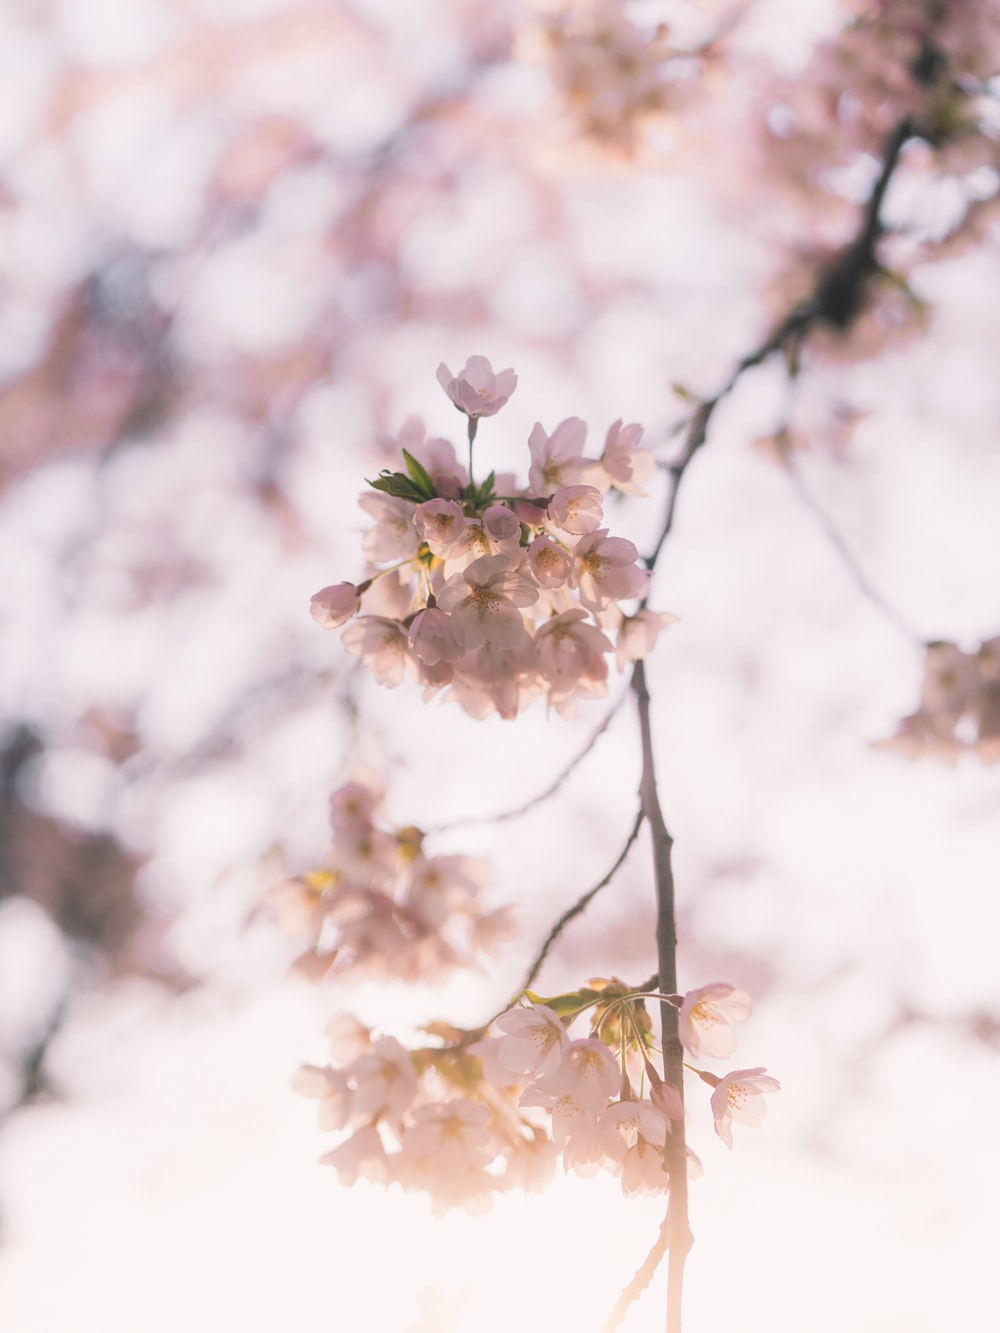 white and pink cherry blossom in close up photography